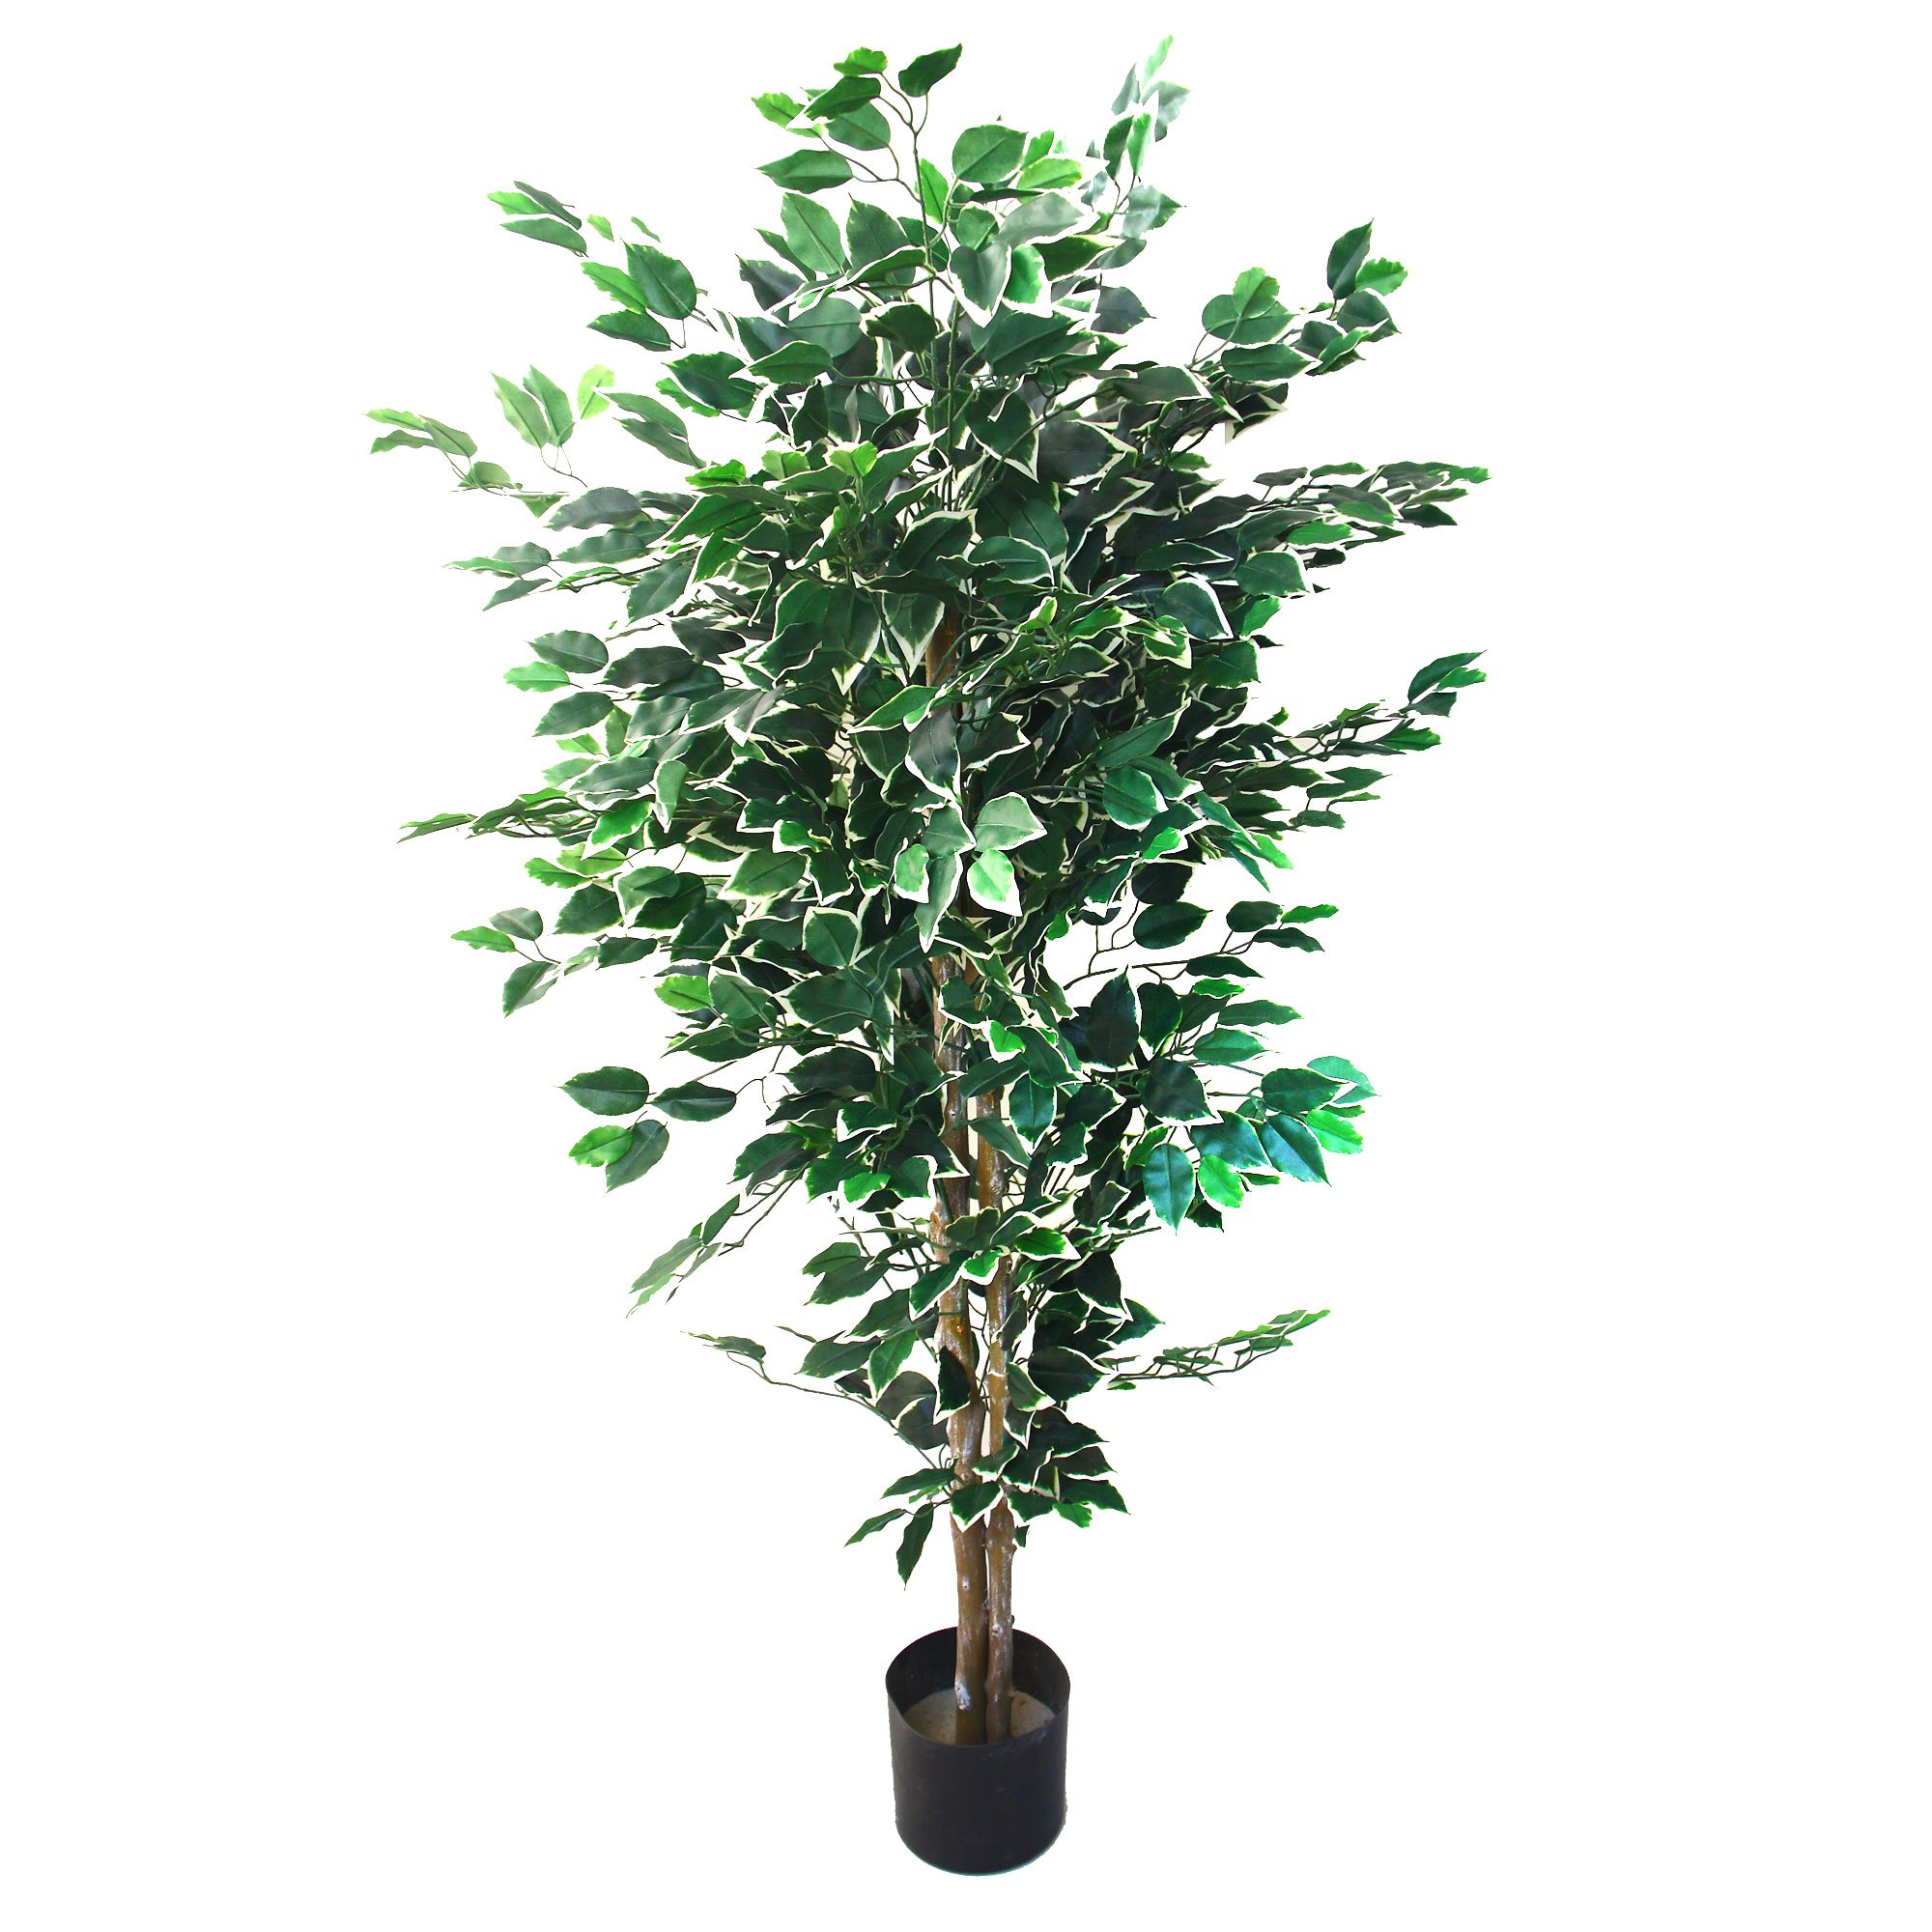 Pure Garden Artificial Ficus Tree with Variegated Leaves and Natural Trunk, Beautiful Fake Plant for Indoor-Outdoor Home Décor-5 ft. Tall Topiary by